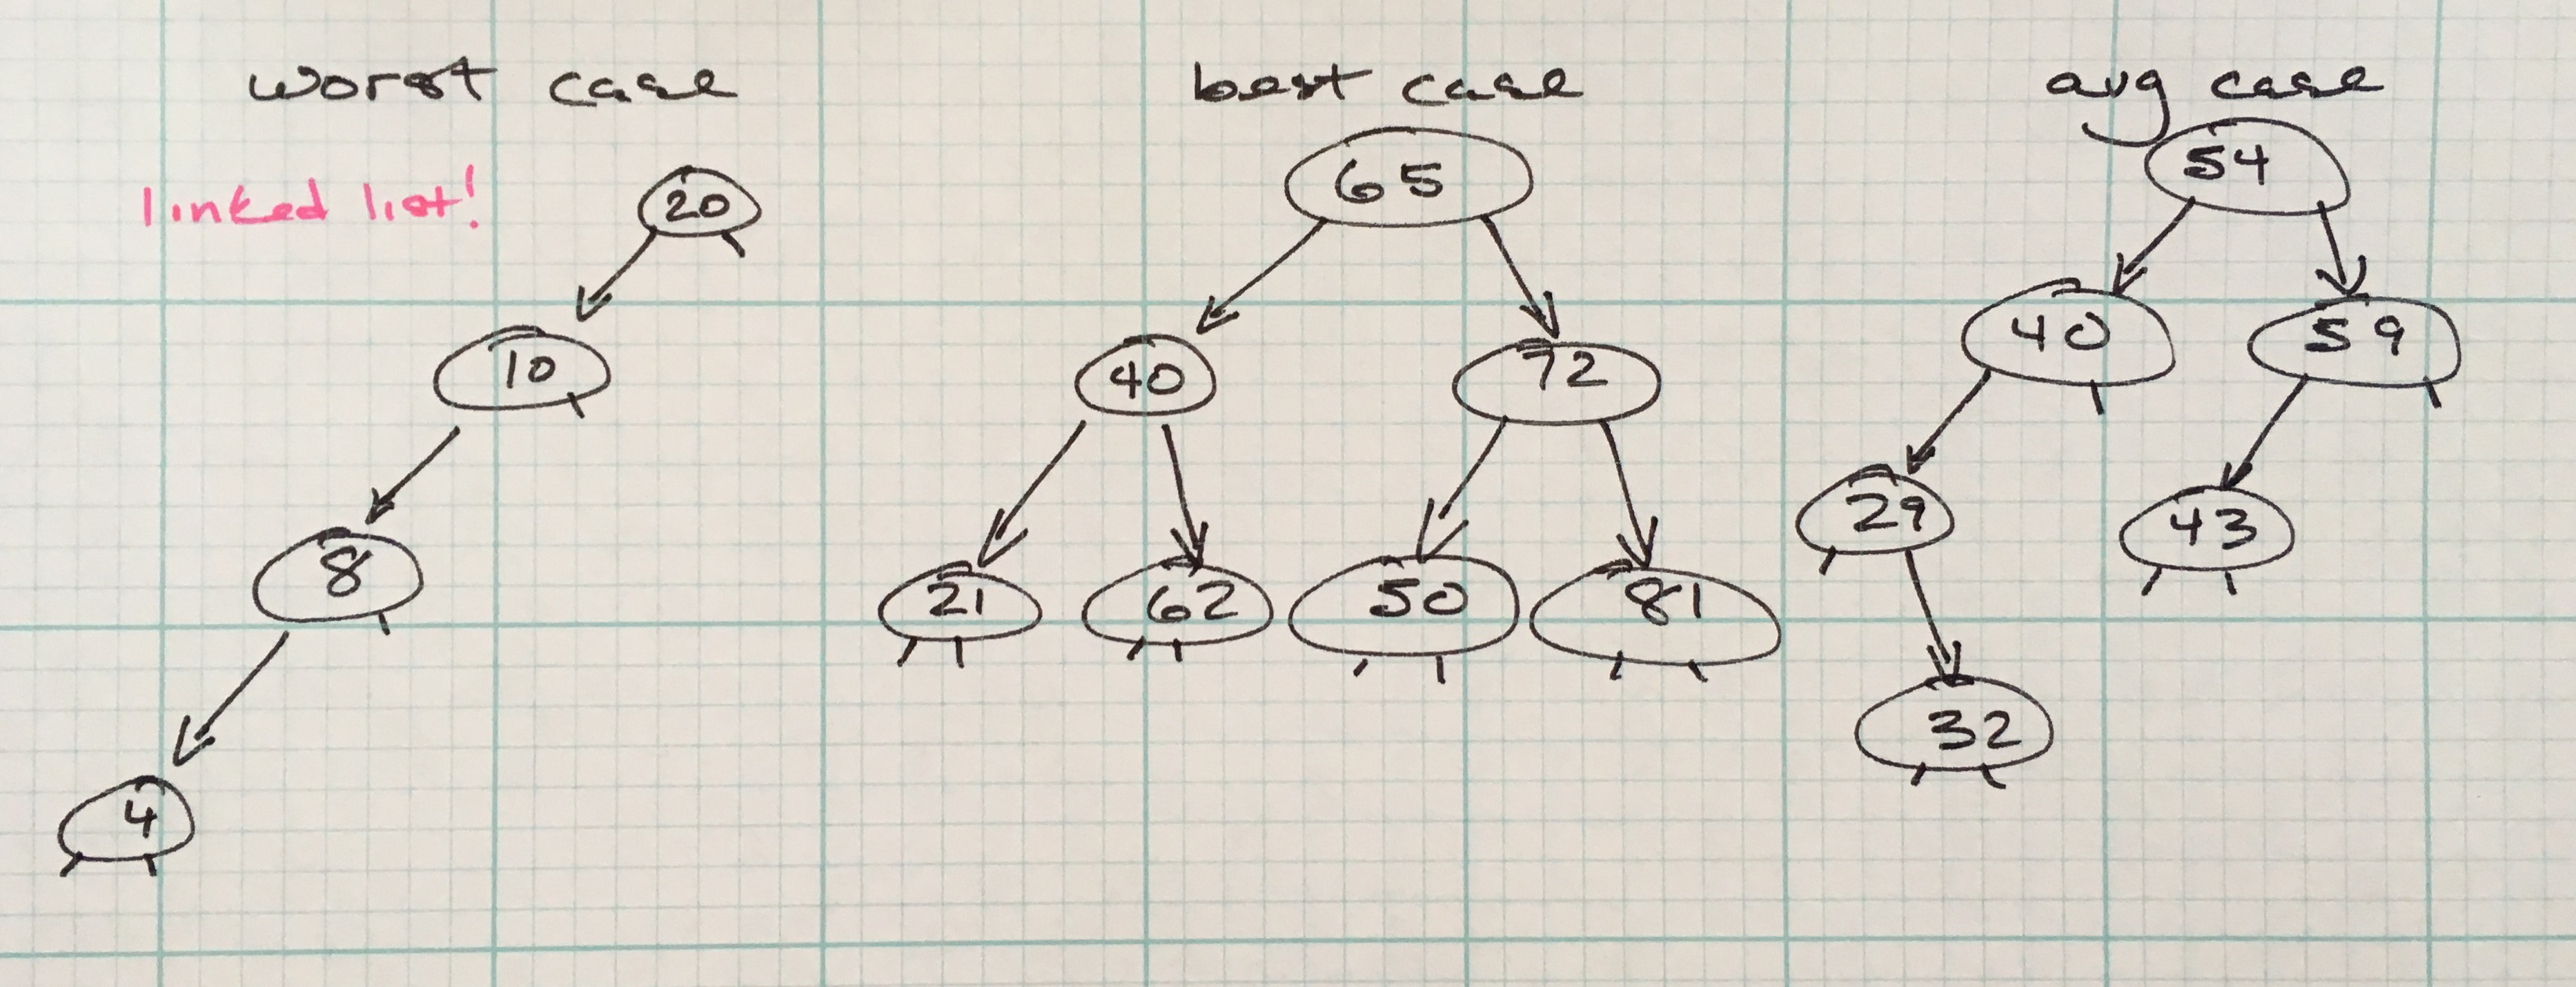 Binary Search Trees and Tree Traversals   evan emolo